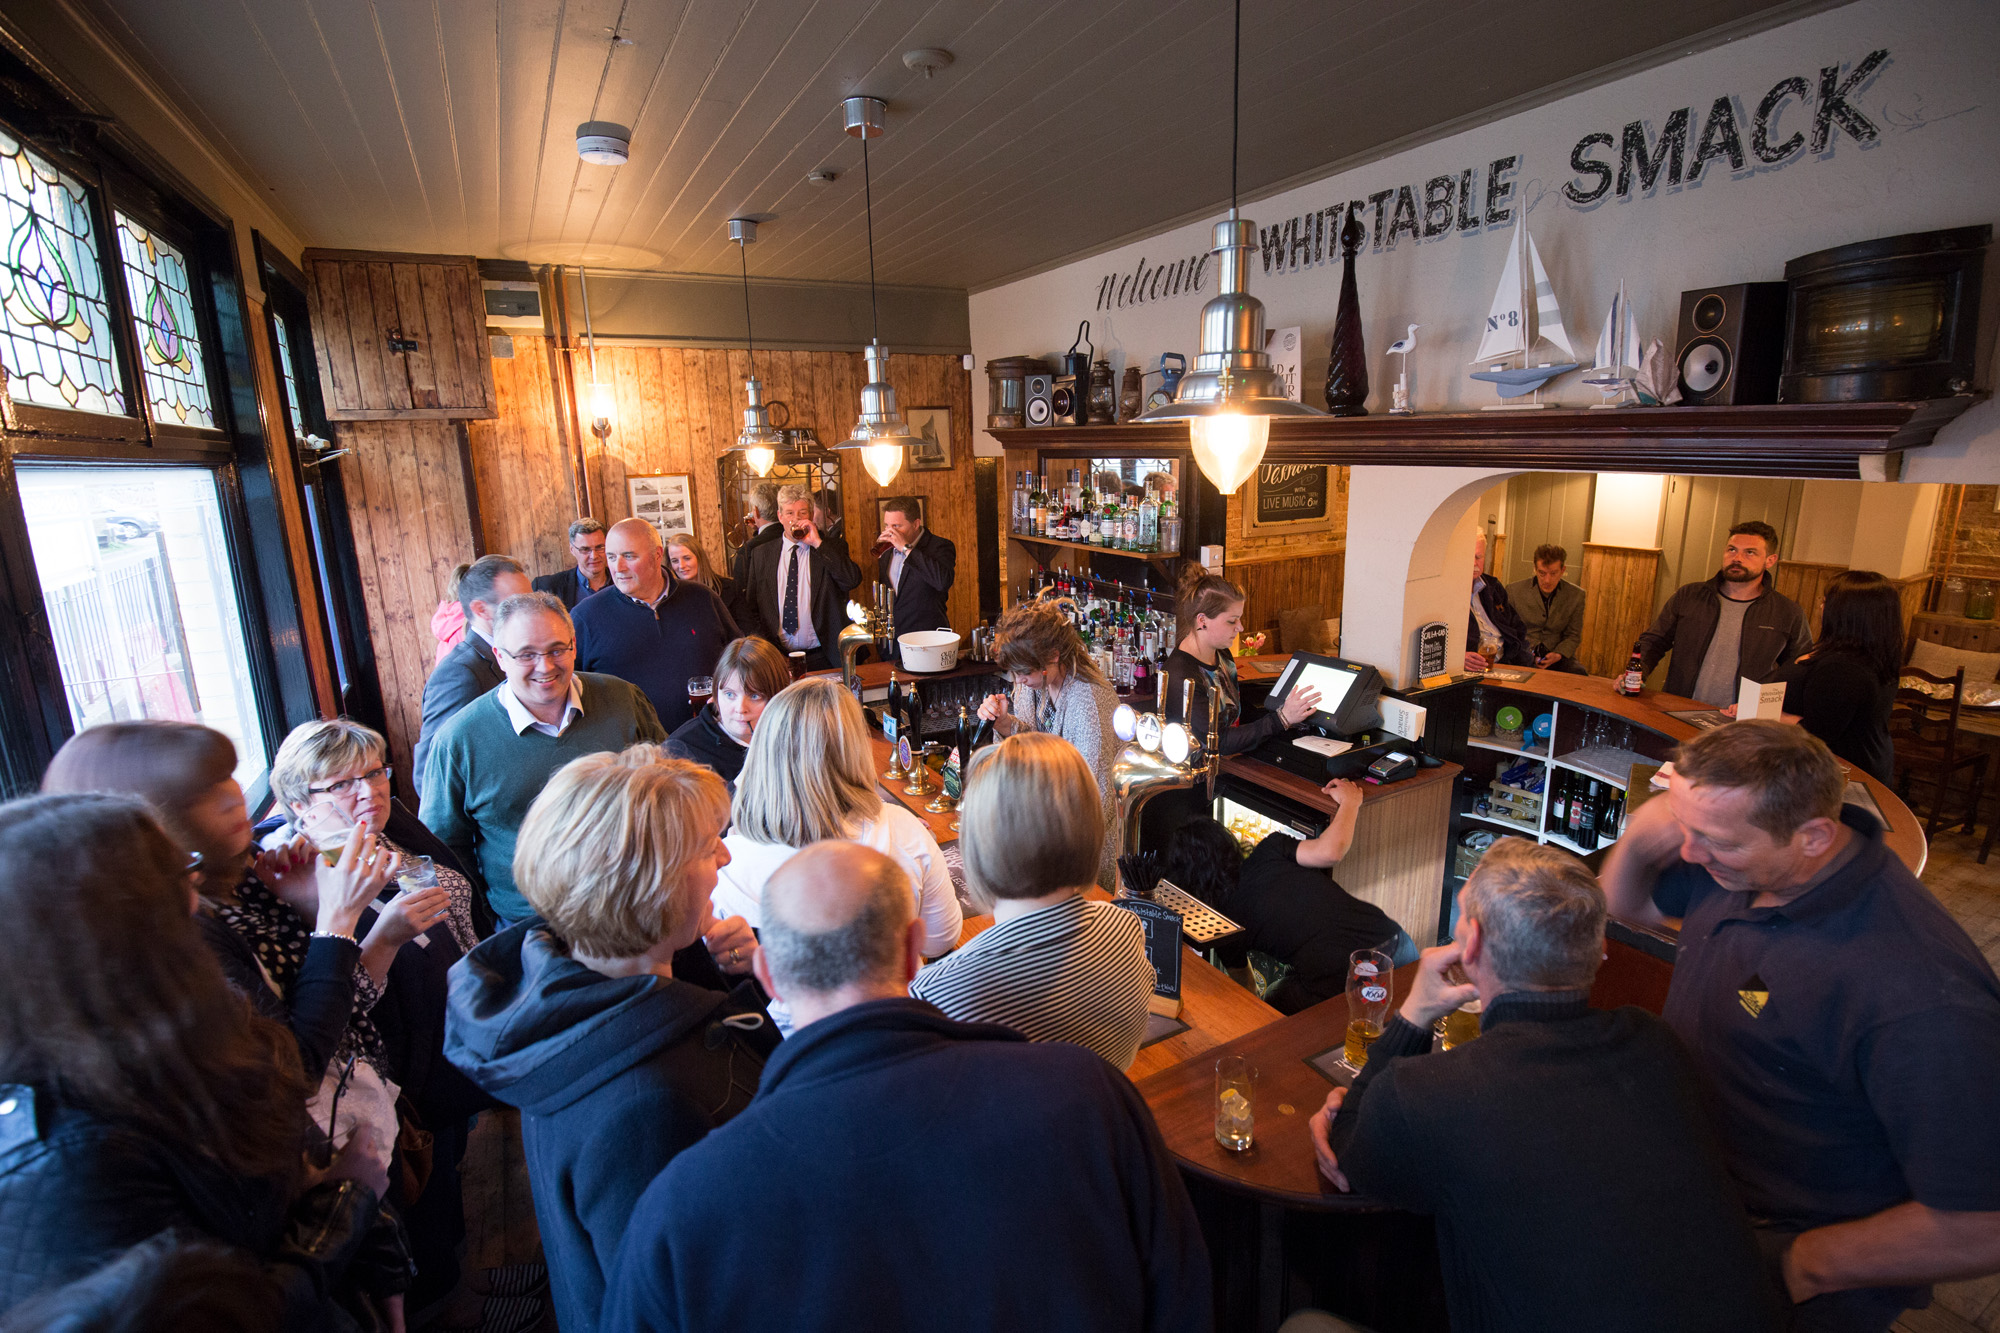 What's On at the Smack Inn Whitstable